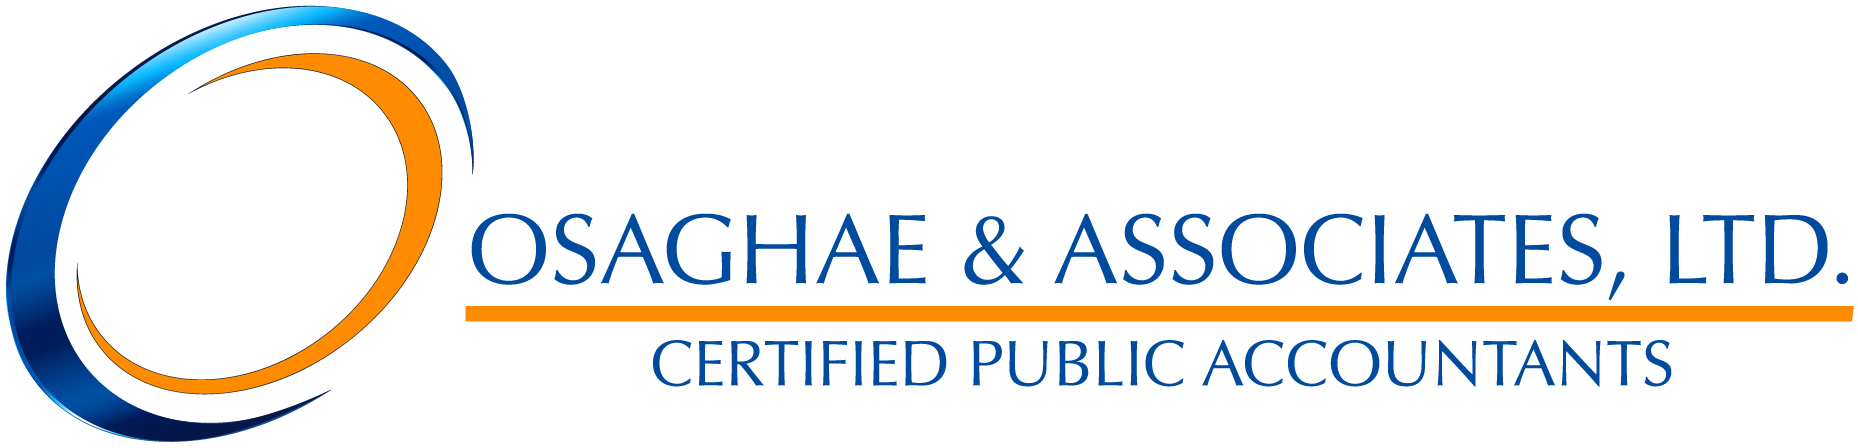 Chicago, Illinois Accounting Firm | Frequently Asked Questions Page | Osaghae & Associates, Ltd.